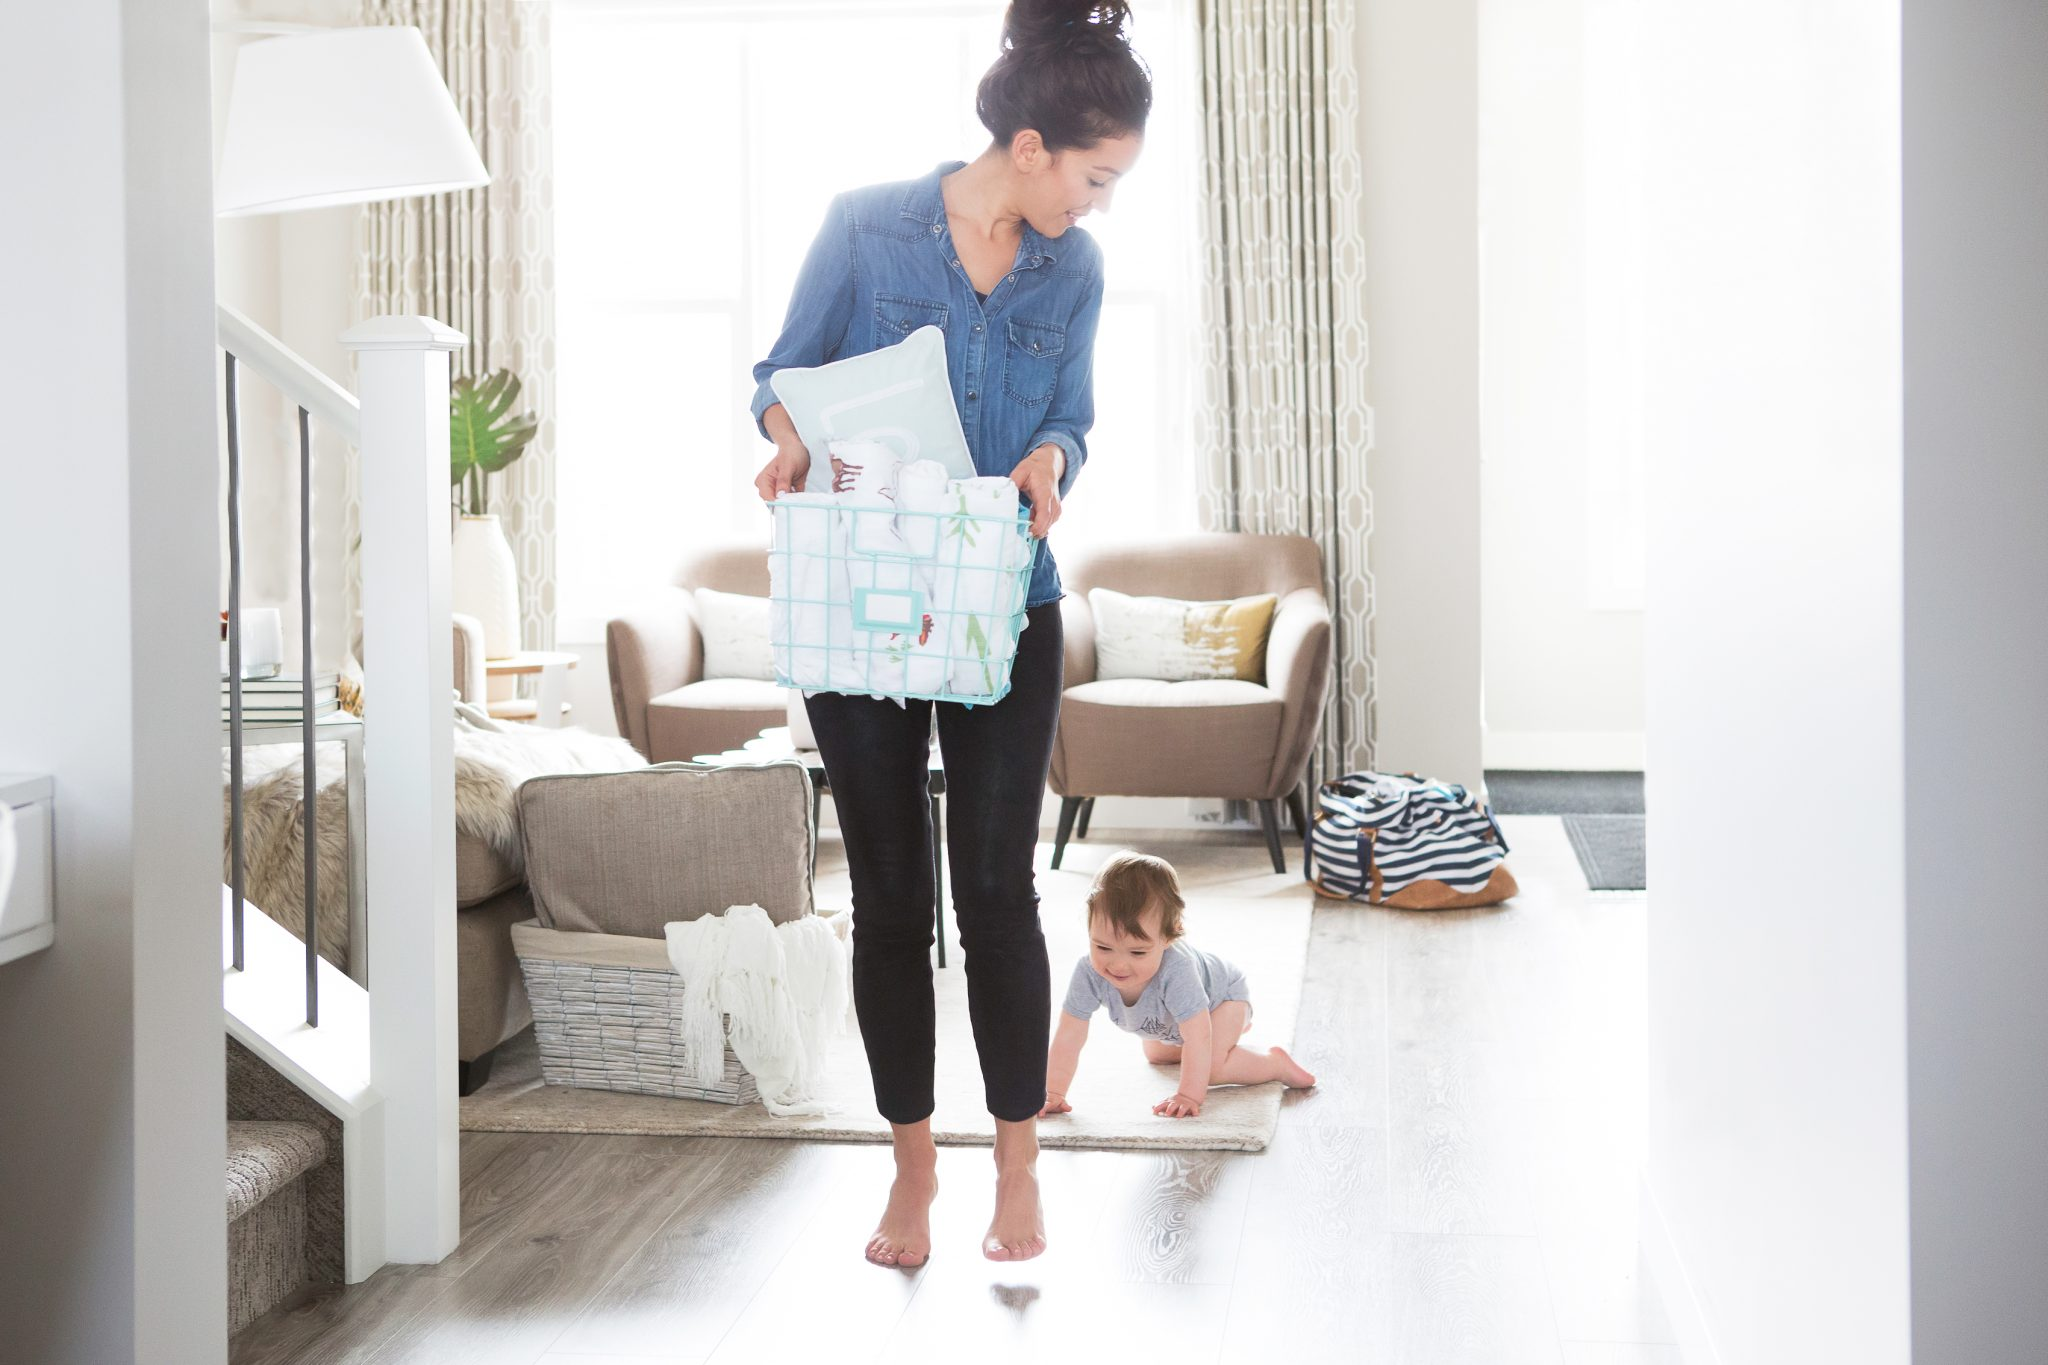 Stay at home mom doing laundry with crawling baby in tow. Many moms find that it's cheaper to be a stay at home mom, and it isn't just ditching daycare that saves you money.